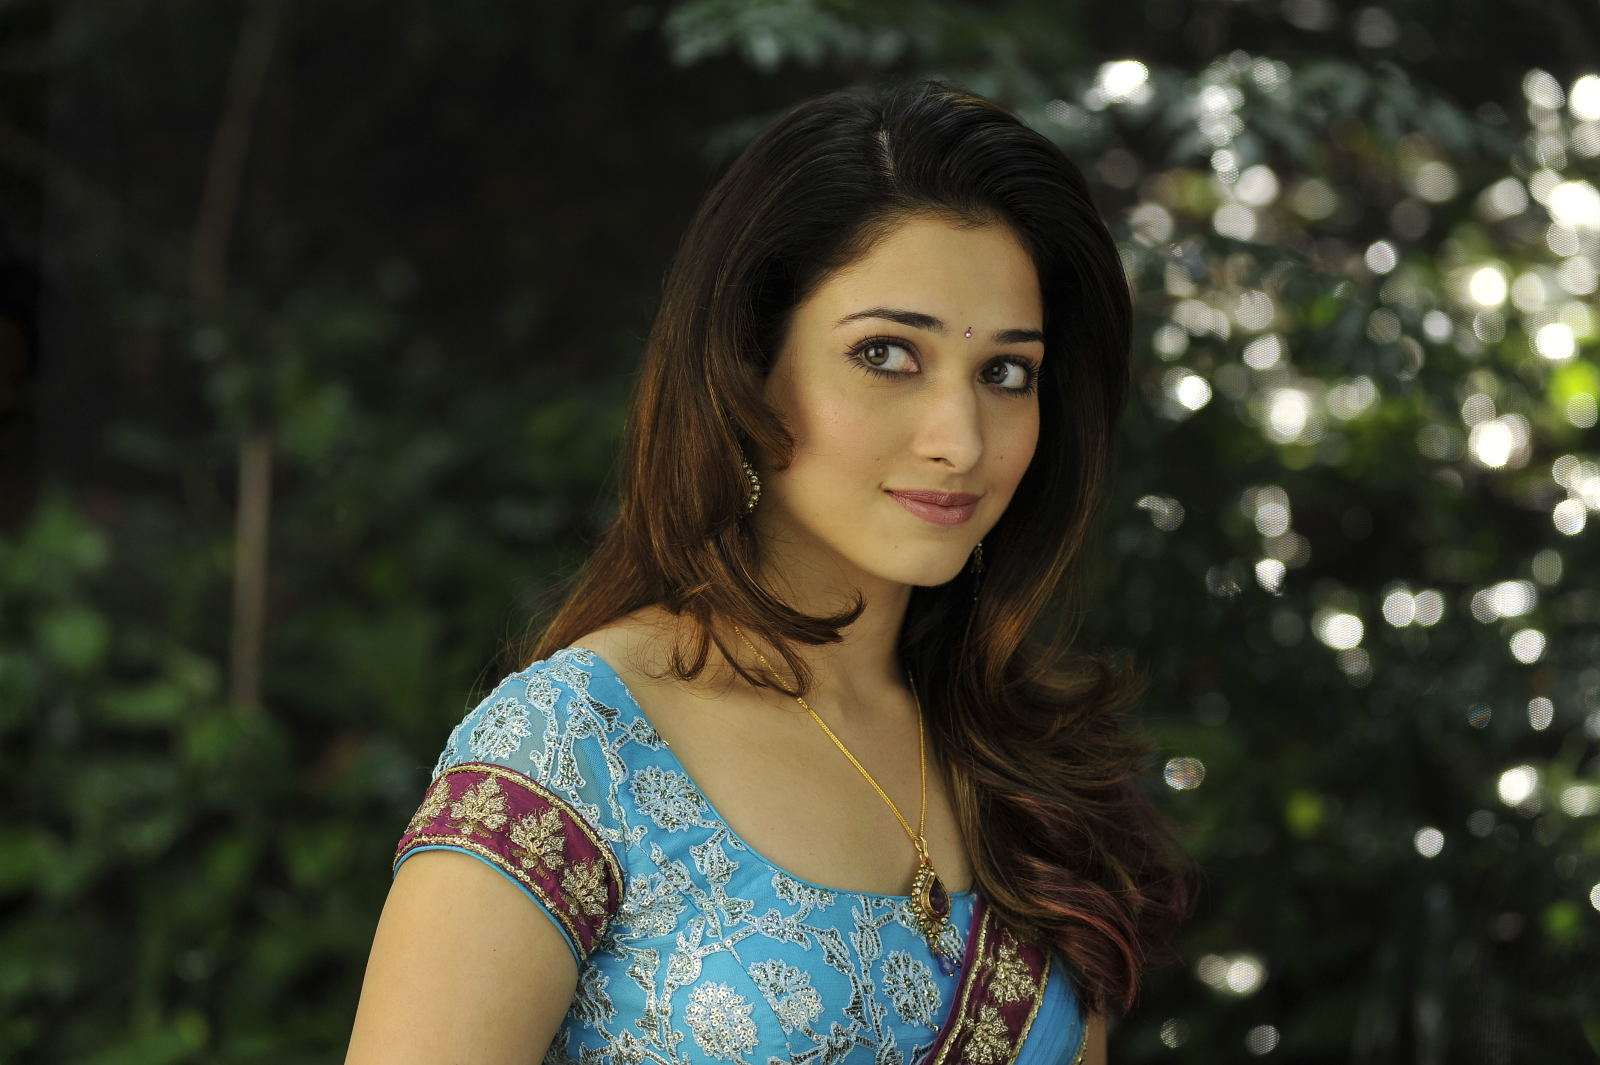 Tamanna In Tadakha Halfsaree: Tamanna Latest Cute Close Up Photoshoot